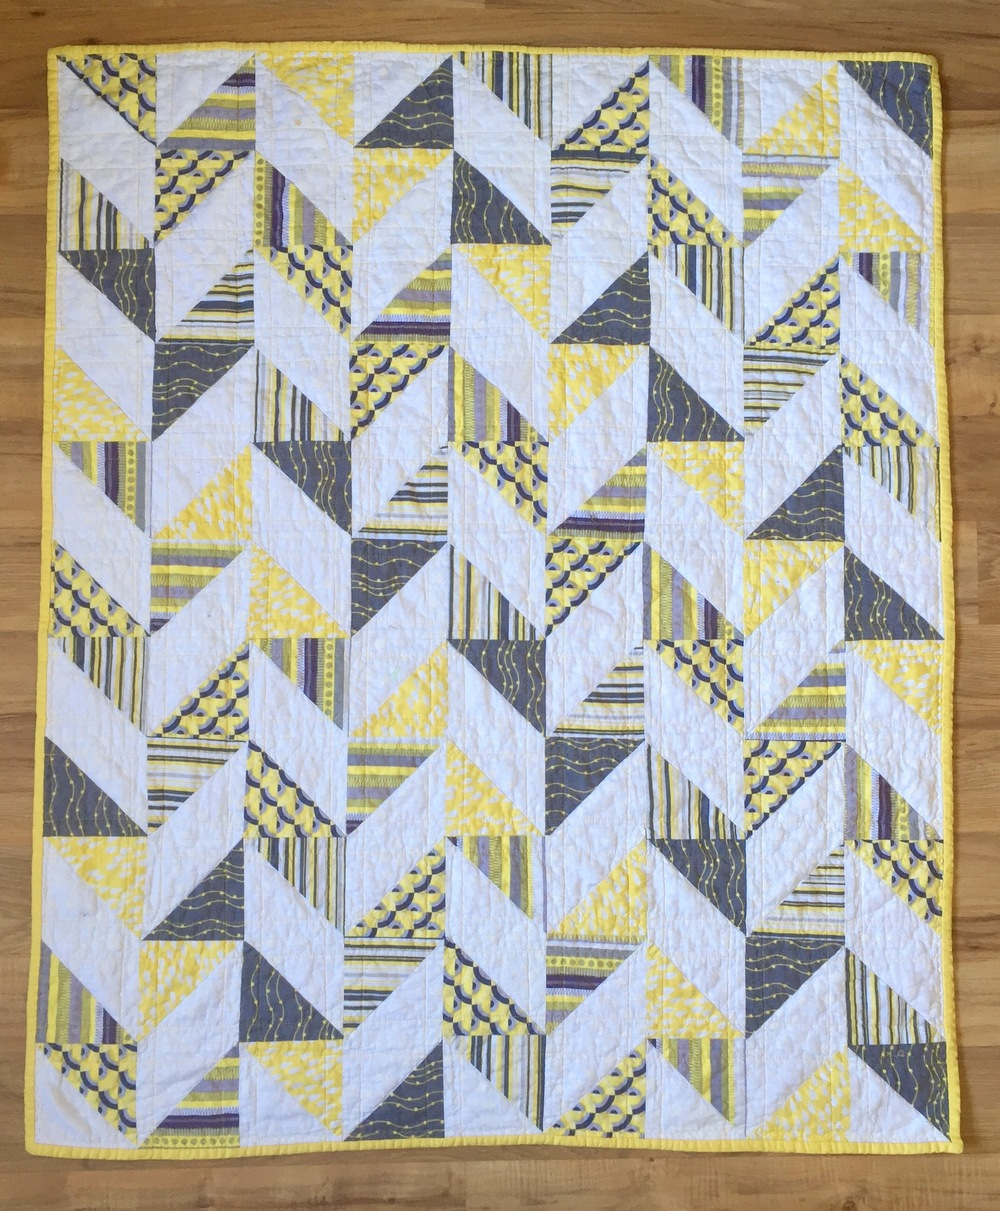 Image of: Herringbone Triangle Quilt Patterns